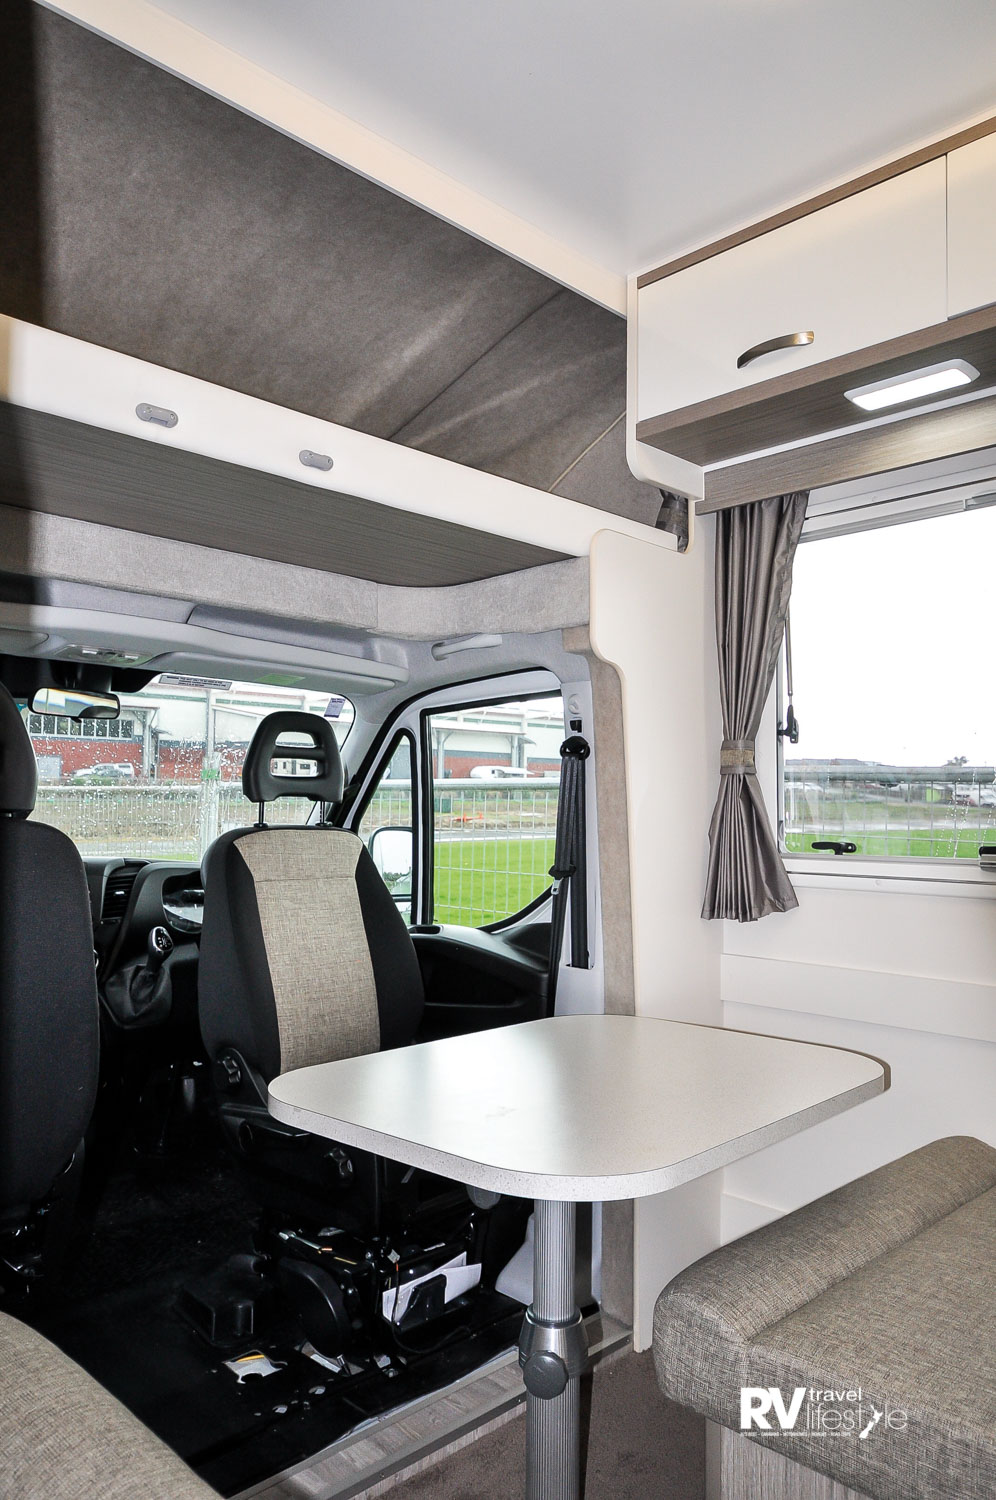 The overhead Luton space above the cab, small dinnette table and seating behind